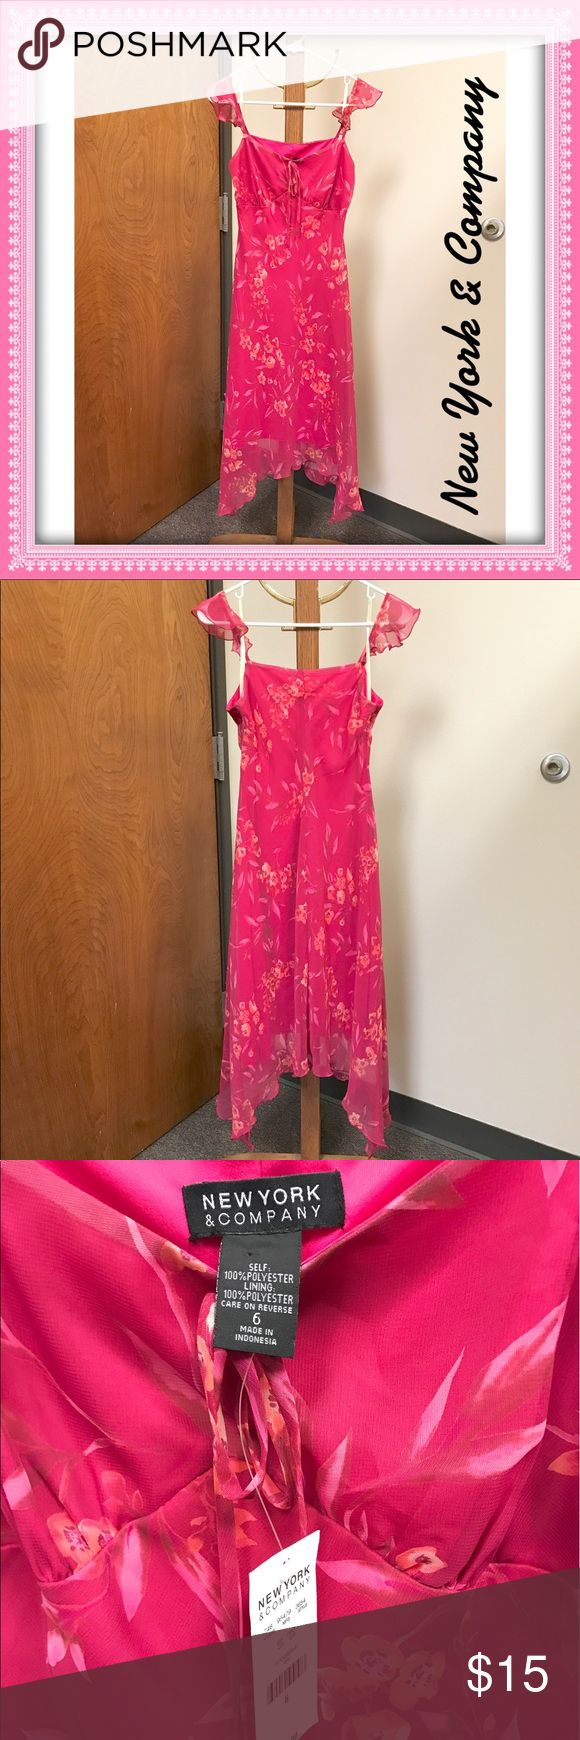 New York & Company Women's Sun Dress NWT Floral sun dress from New York & Company. Spaghetti straps with a little flutter. Faux front tie with flutter hem. Self and lining are 100% Polyester. Flat measurements armpit to armpit: 16.5-inches. NWT New York & Company Dresses Midi